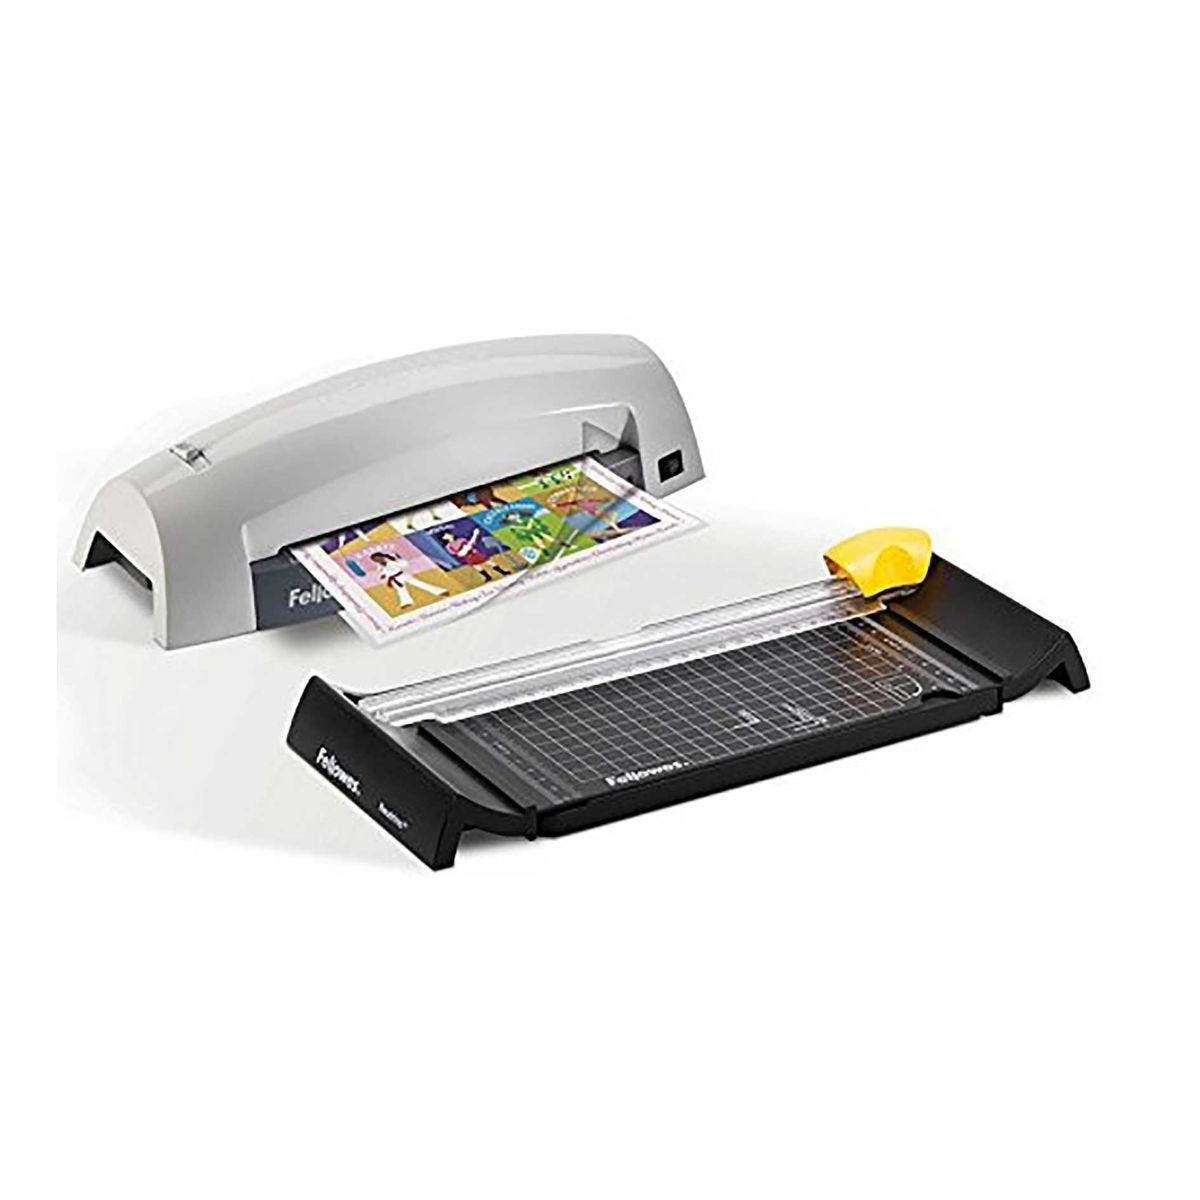 Fellowes Lunar A4 Laminator and Trimmer Craft Pack